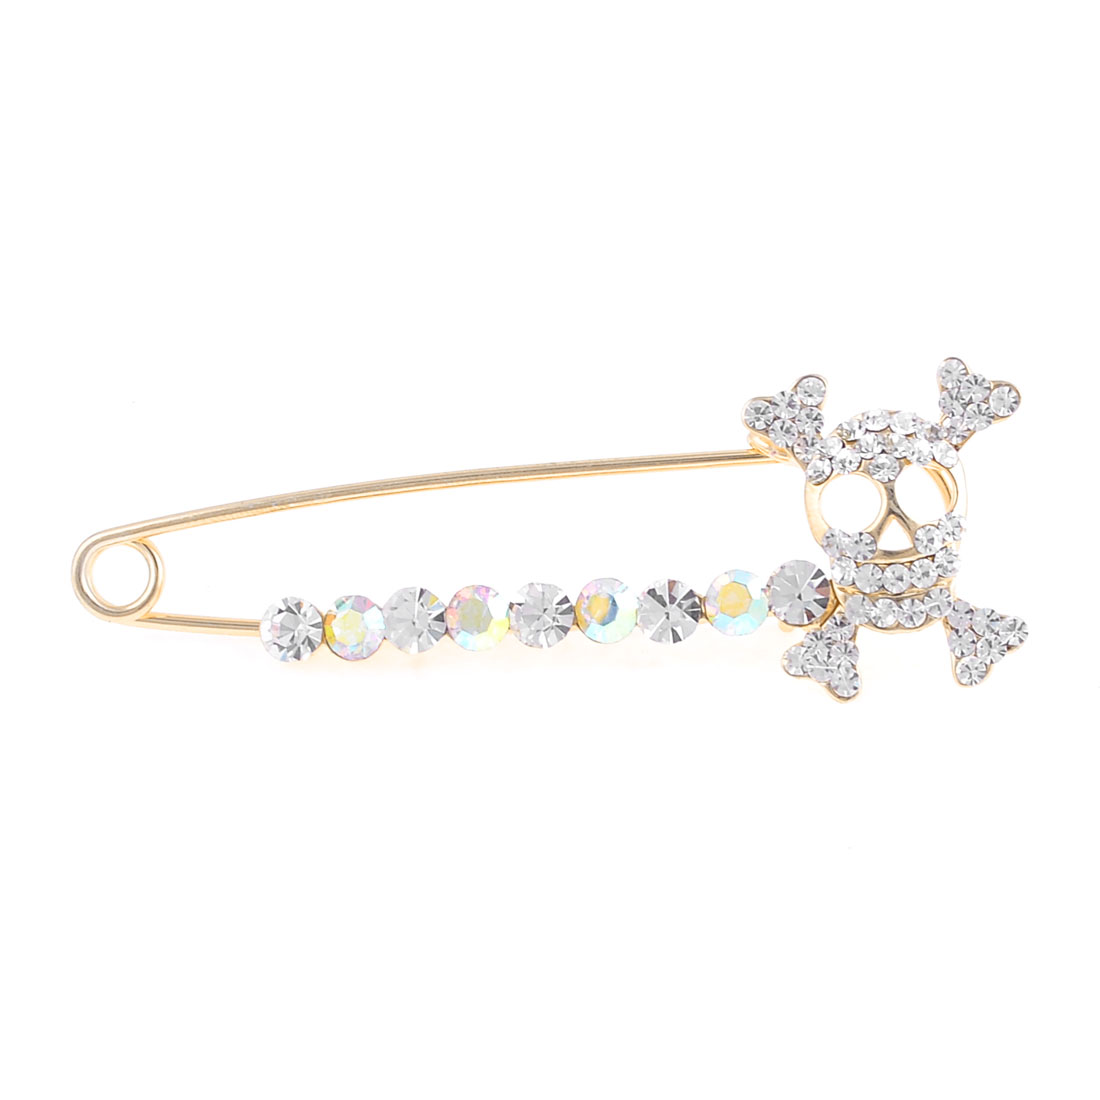 Rhinestone Skull Accent Safety Alloy Pin Brooch Breastpin Gold Tone